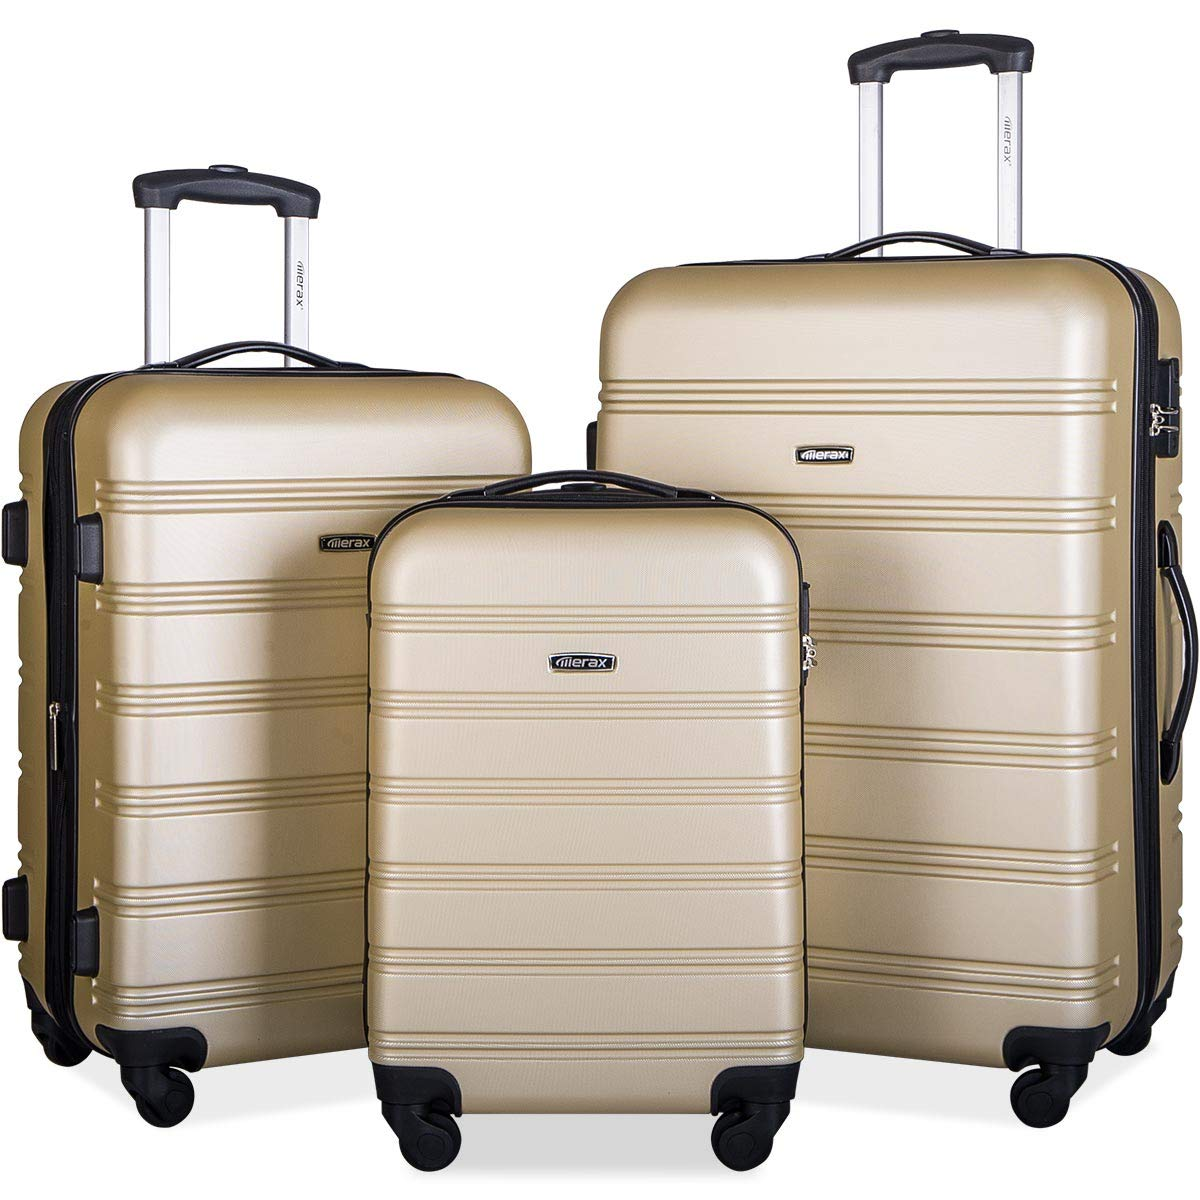 Merax Travelhouse Luggage Set 3 Piece Expandable Lightweight Spinner Suitcase by Merax